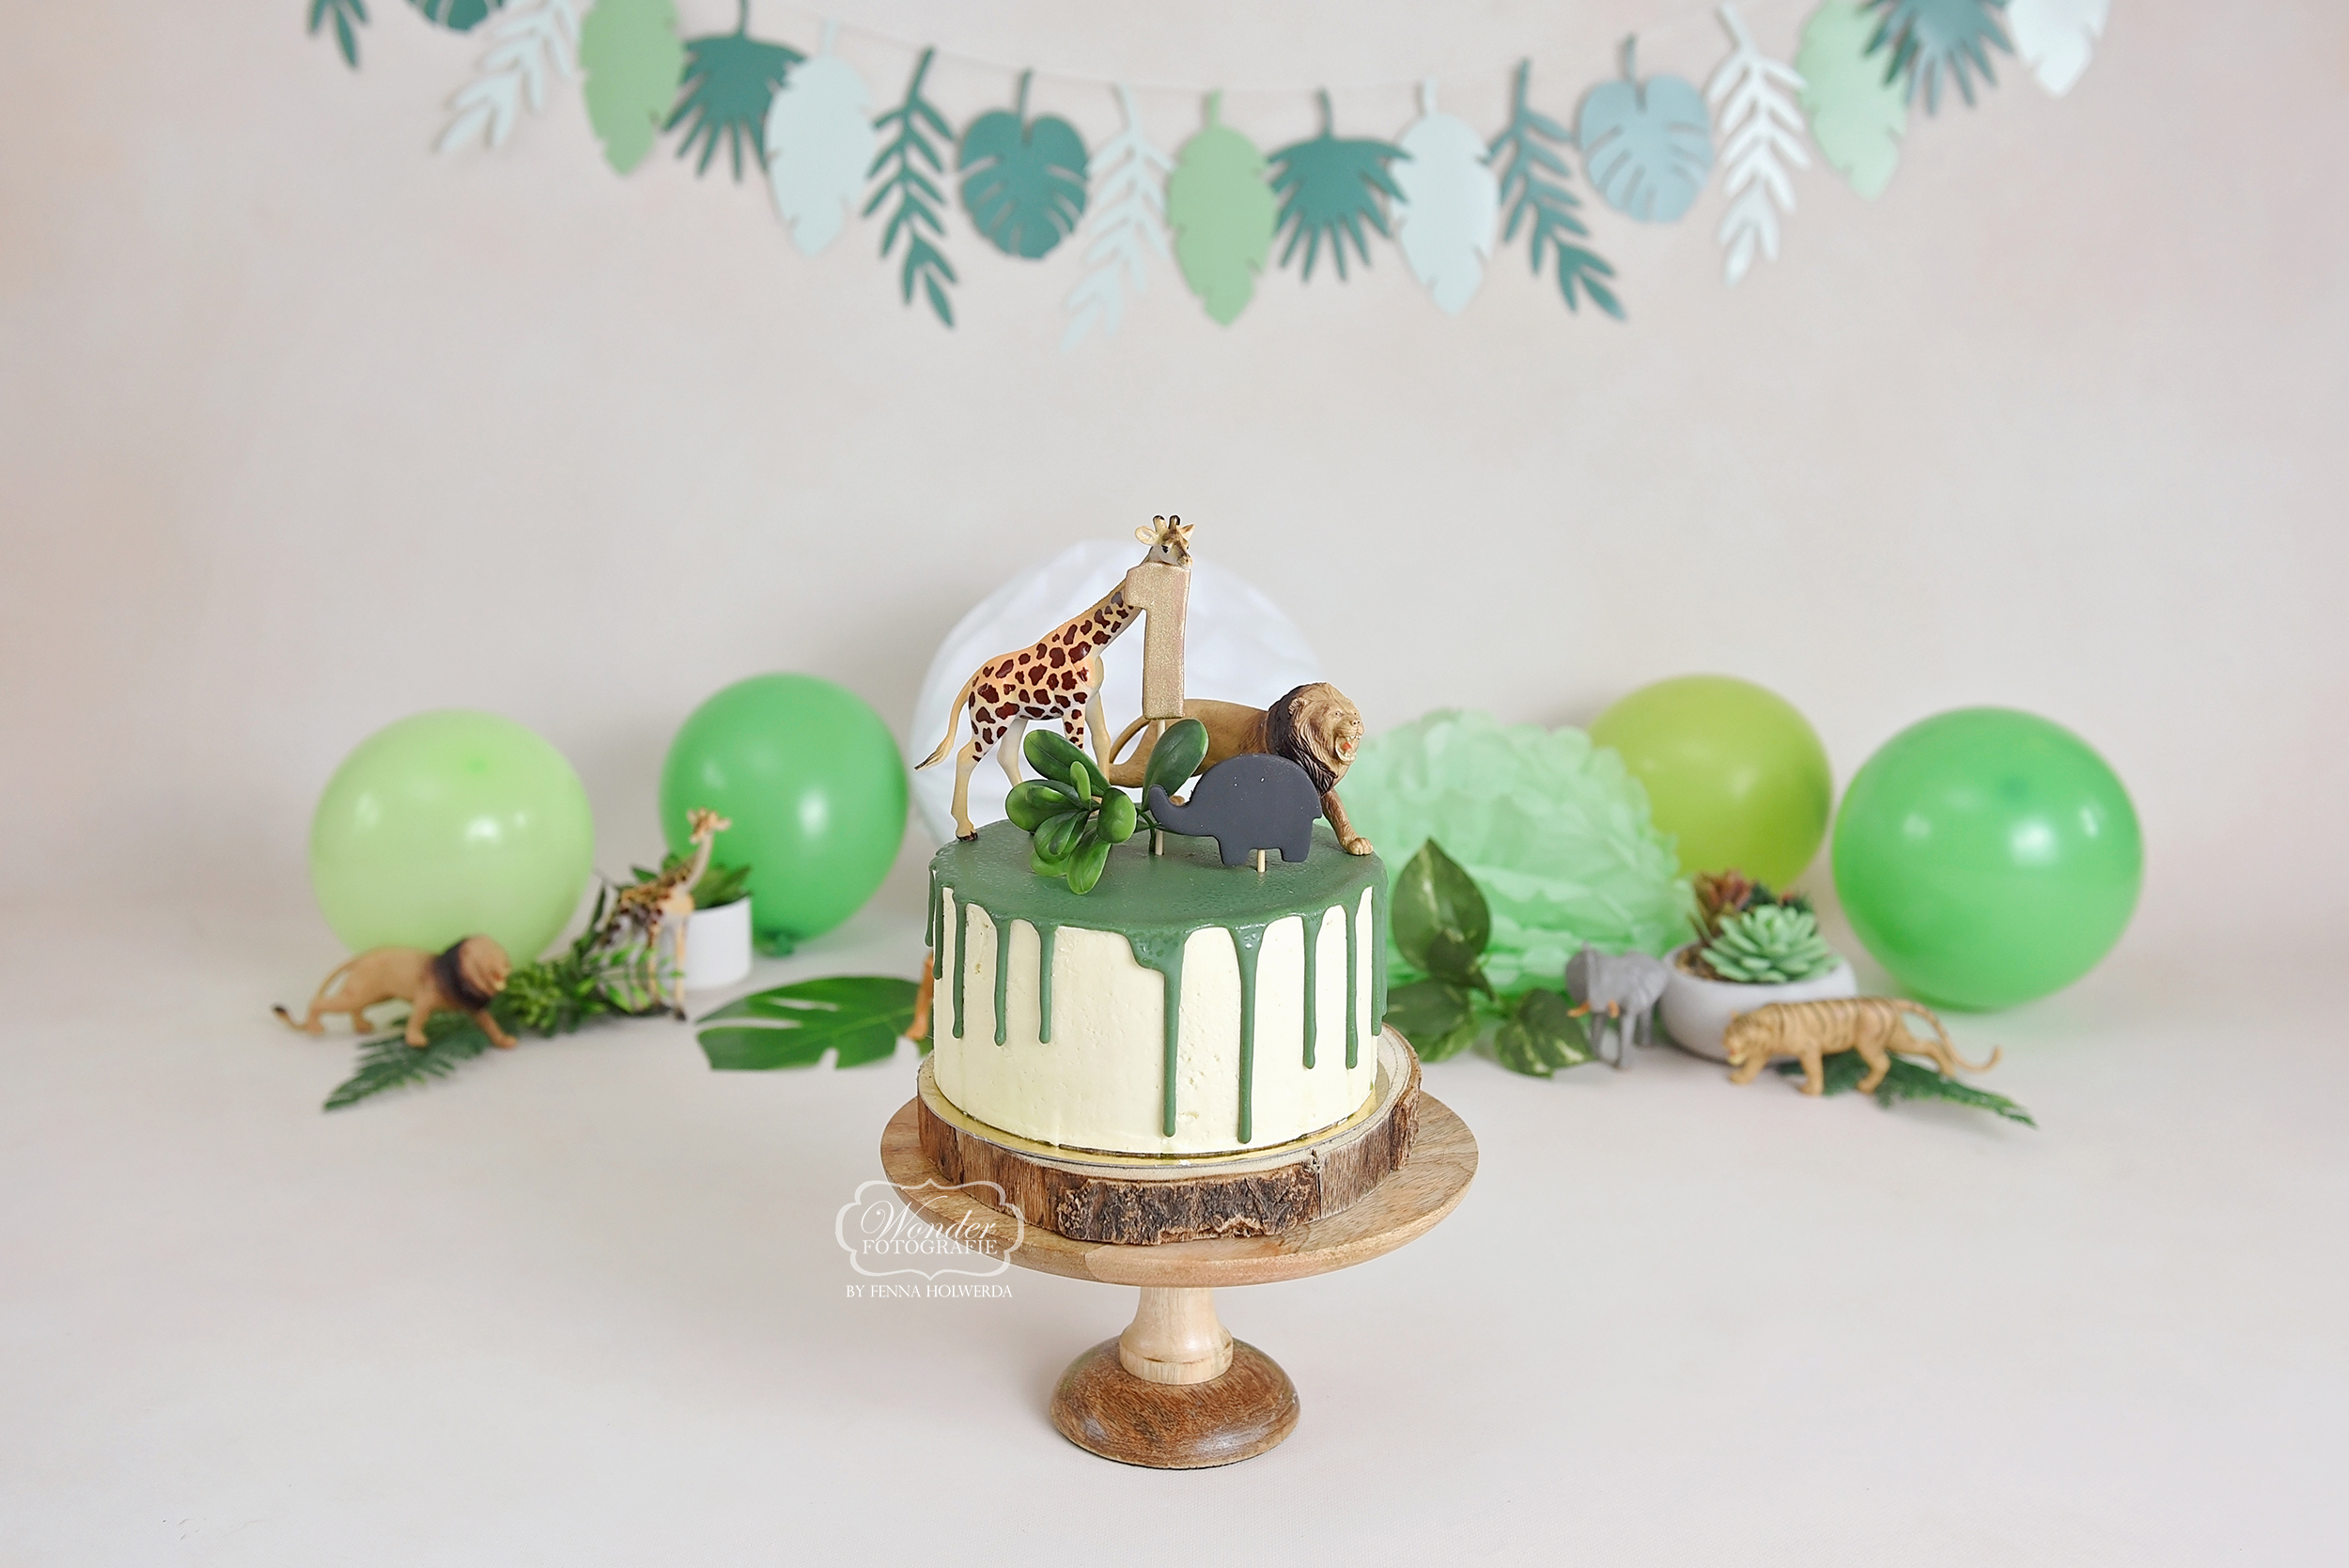 Jungle Groen Dripcake cake smash fotoshoot